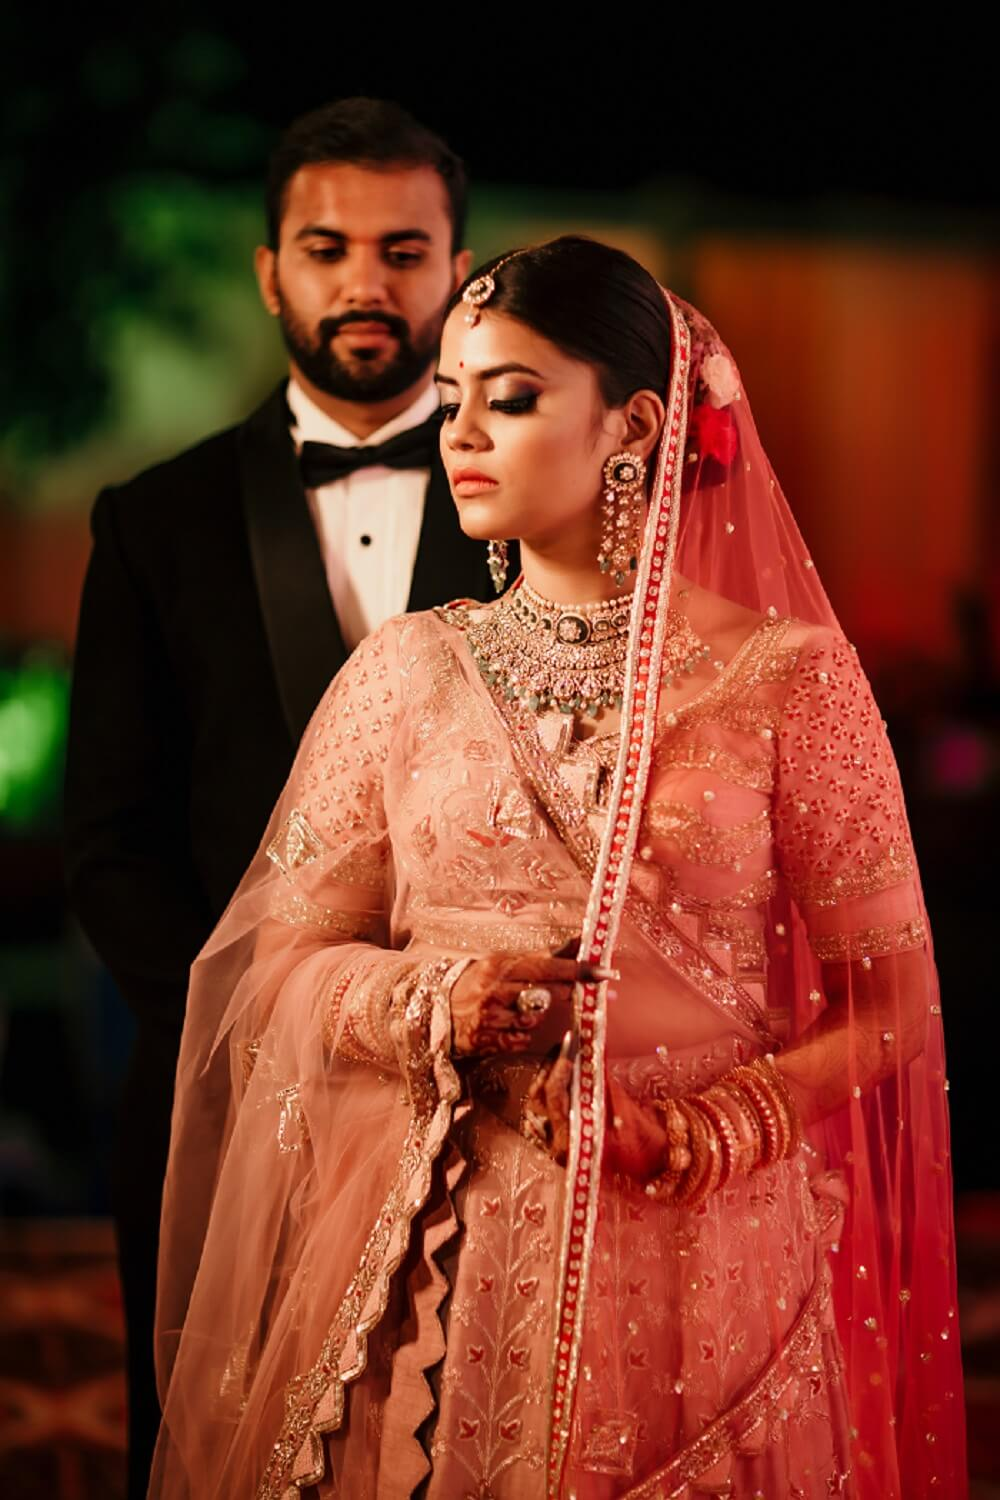 Real Wedding Photographs Of @Oragraphy Has Our Hearts!